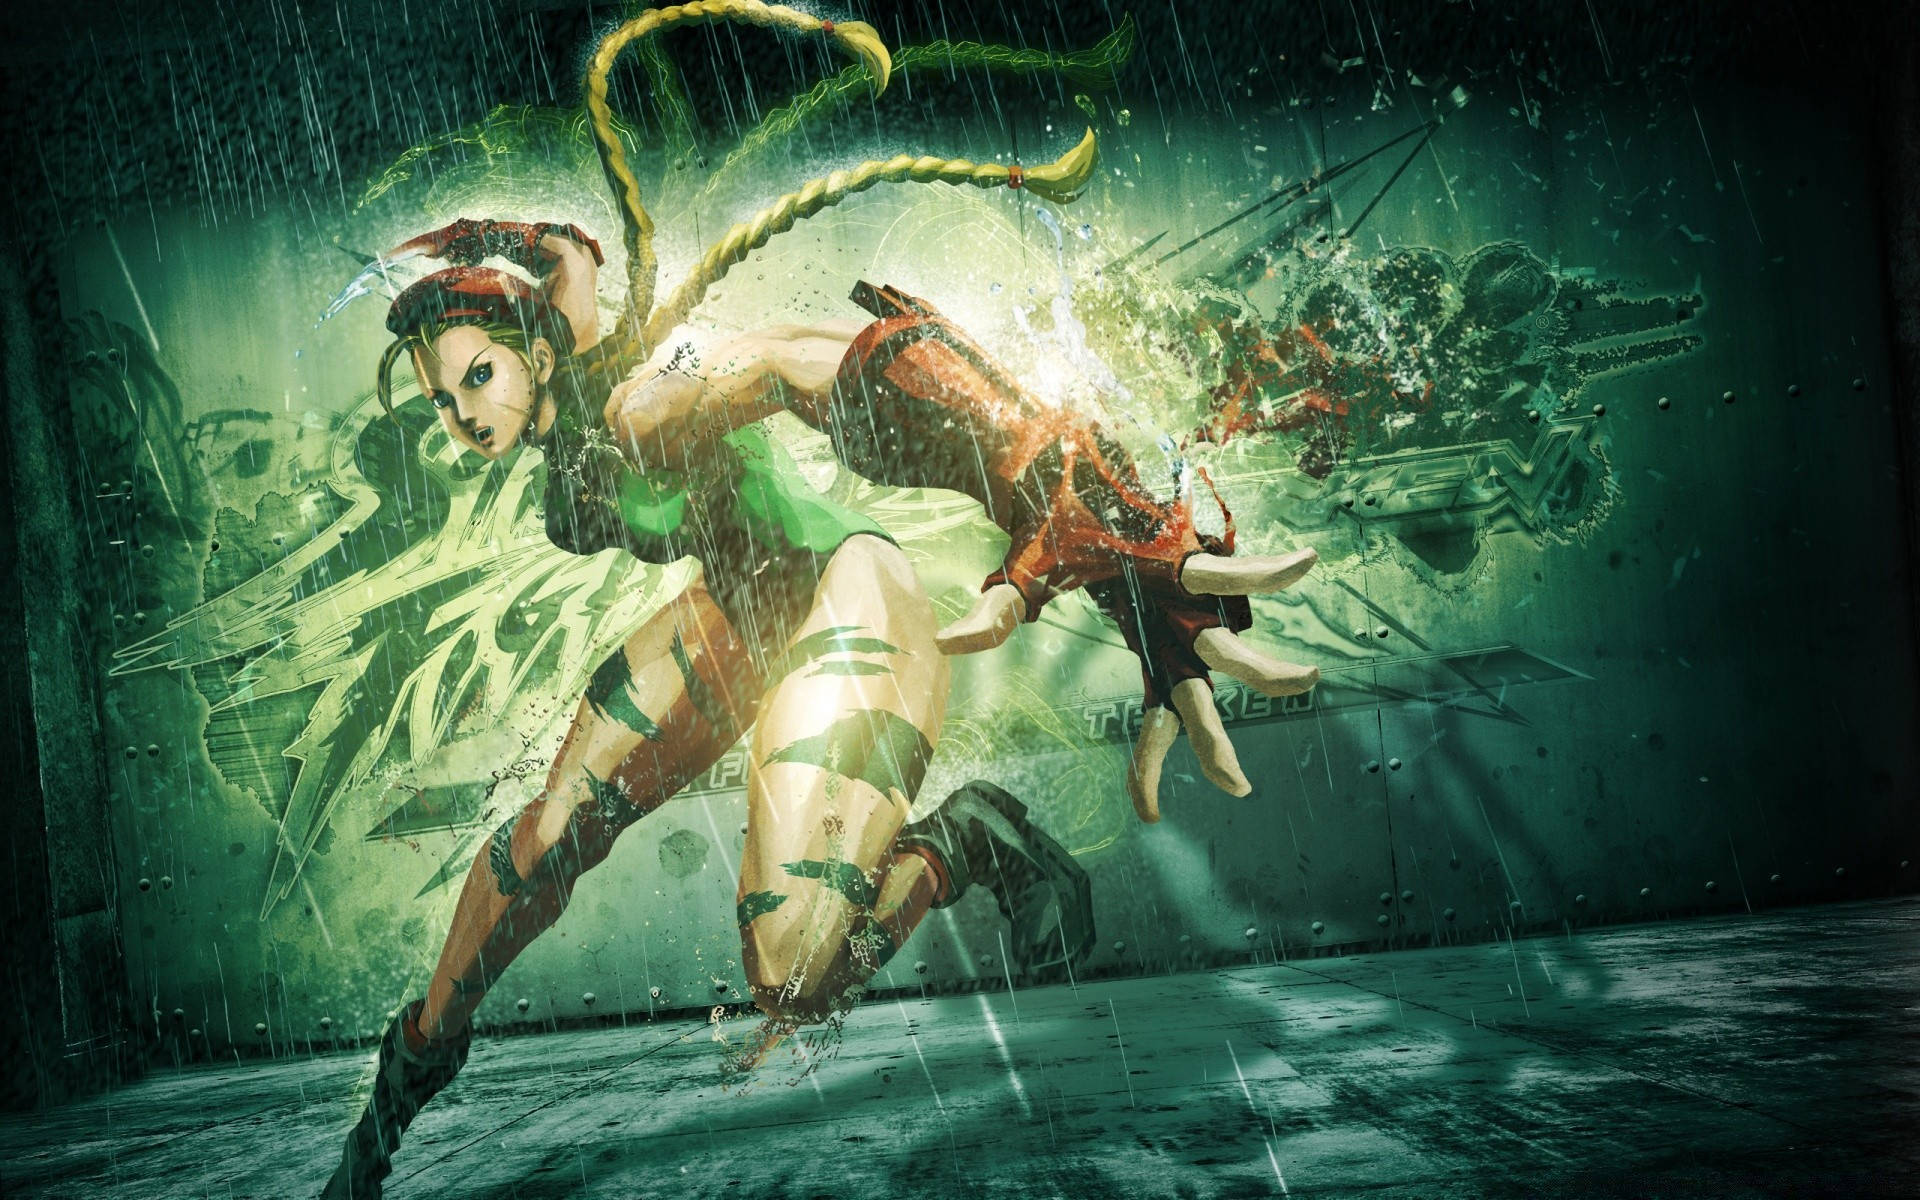 Street Fighter X Tekken (2012) Cammy